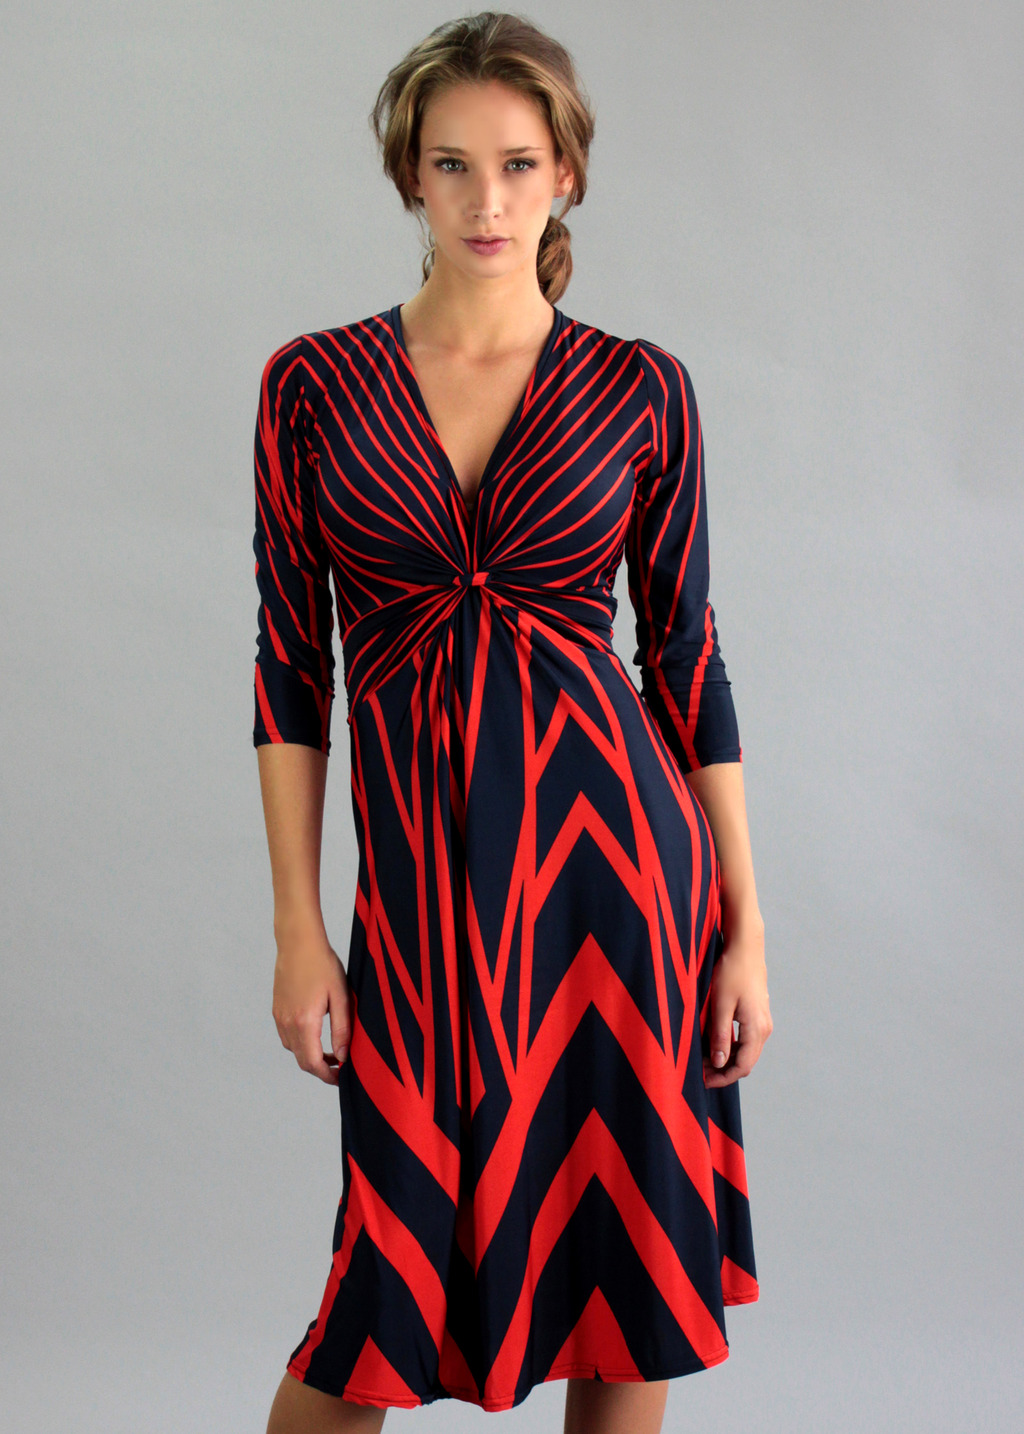 Shard Dress - style: empire line; length: below the knee; neckline: low v-neck; fit: loose; bust detail: knot twist front detail at bust; predominant colour: true red; secondary colour: navy; occasions: casual, evening, creative work; fibres: polyester/polyamide - stretch; sleeve length: 3/4 length; sleeve style: standard; pattern type: fabric; pattern size: big & busy; pattern: patterned/print; texture group: jersey - stretchy/drapey; season: a/w 2013